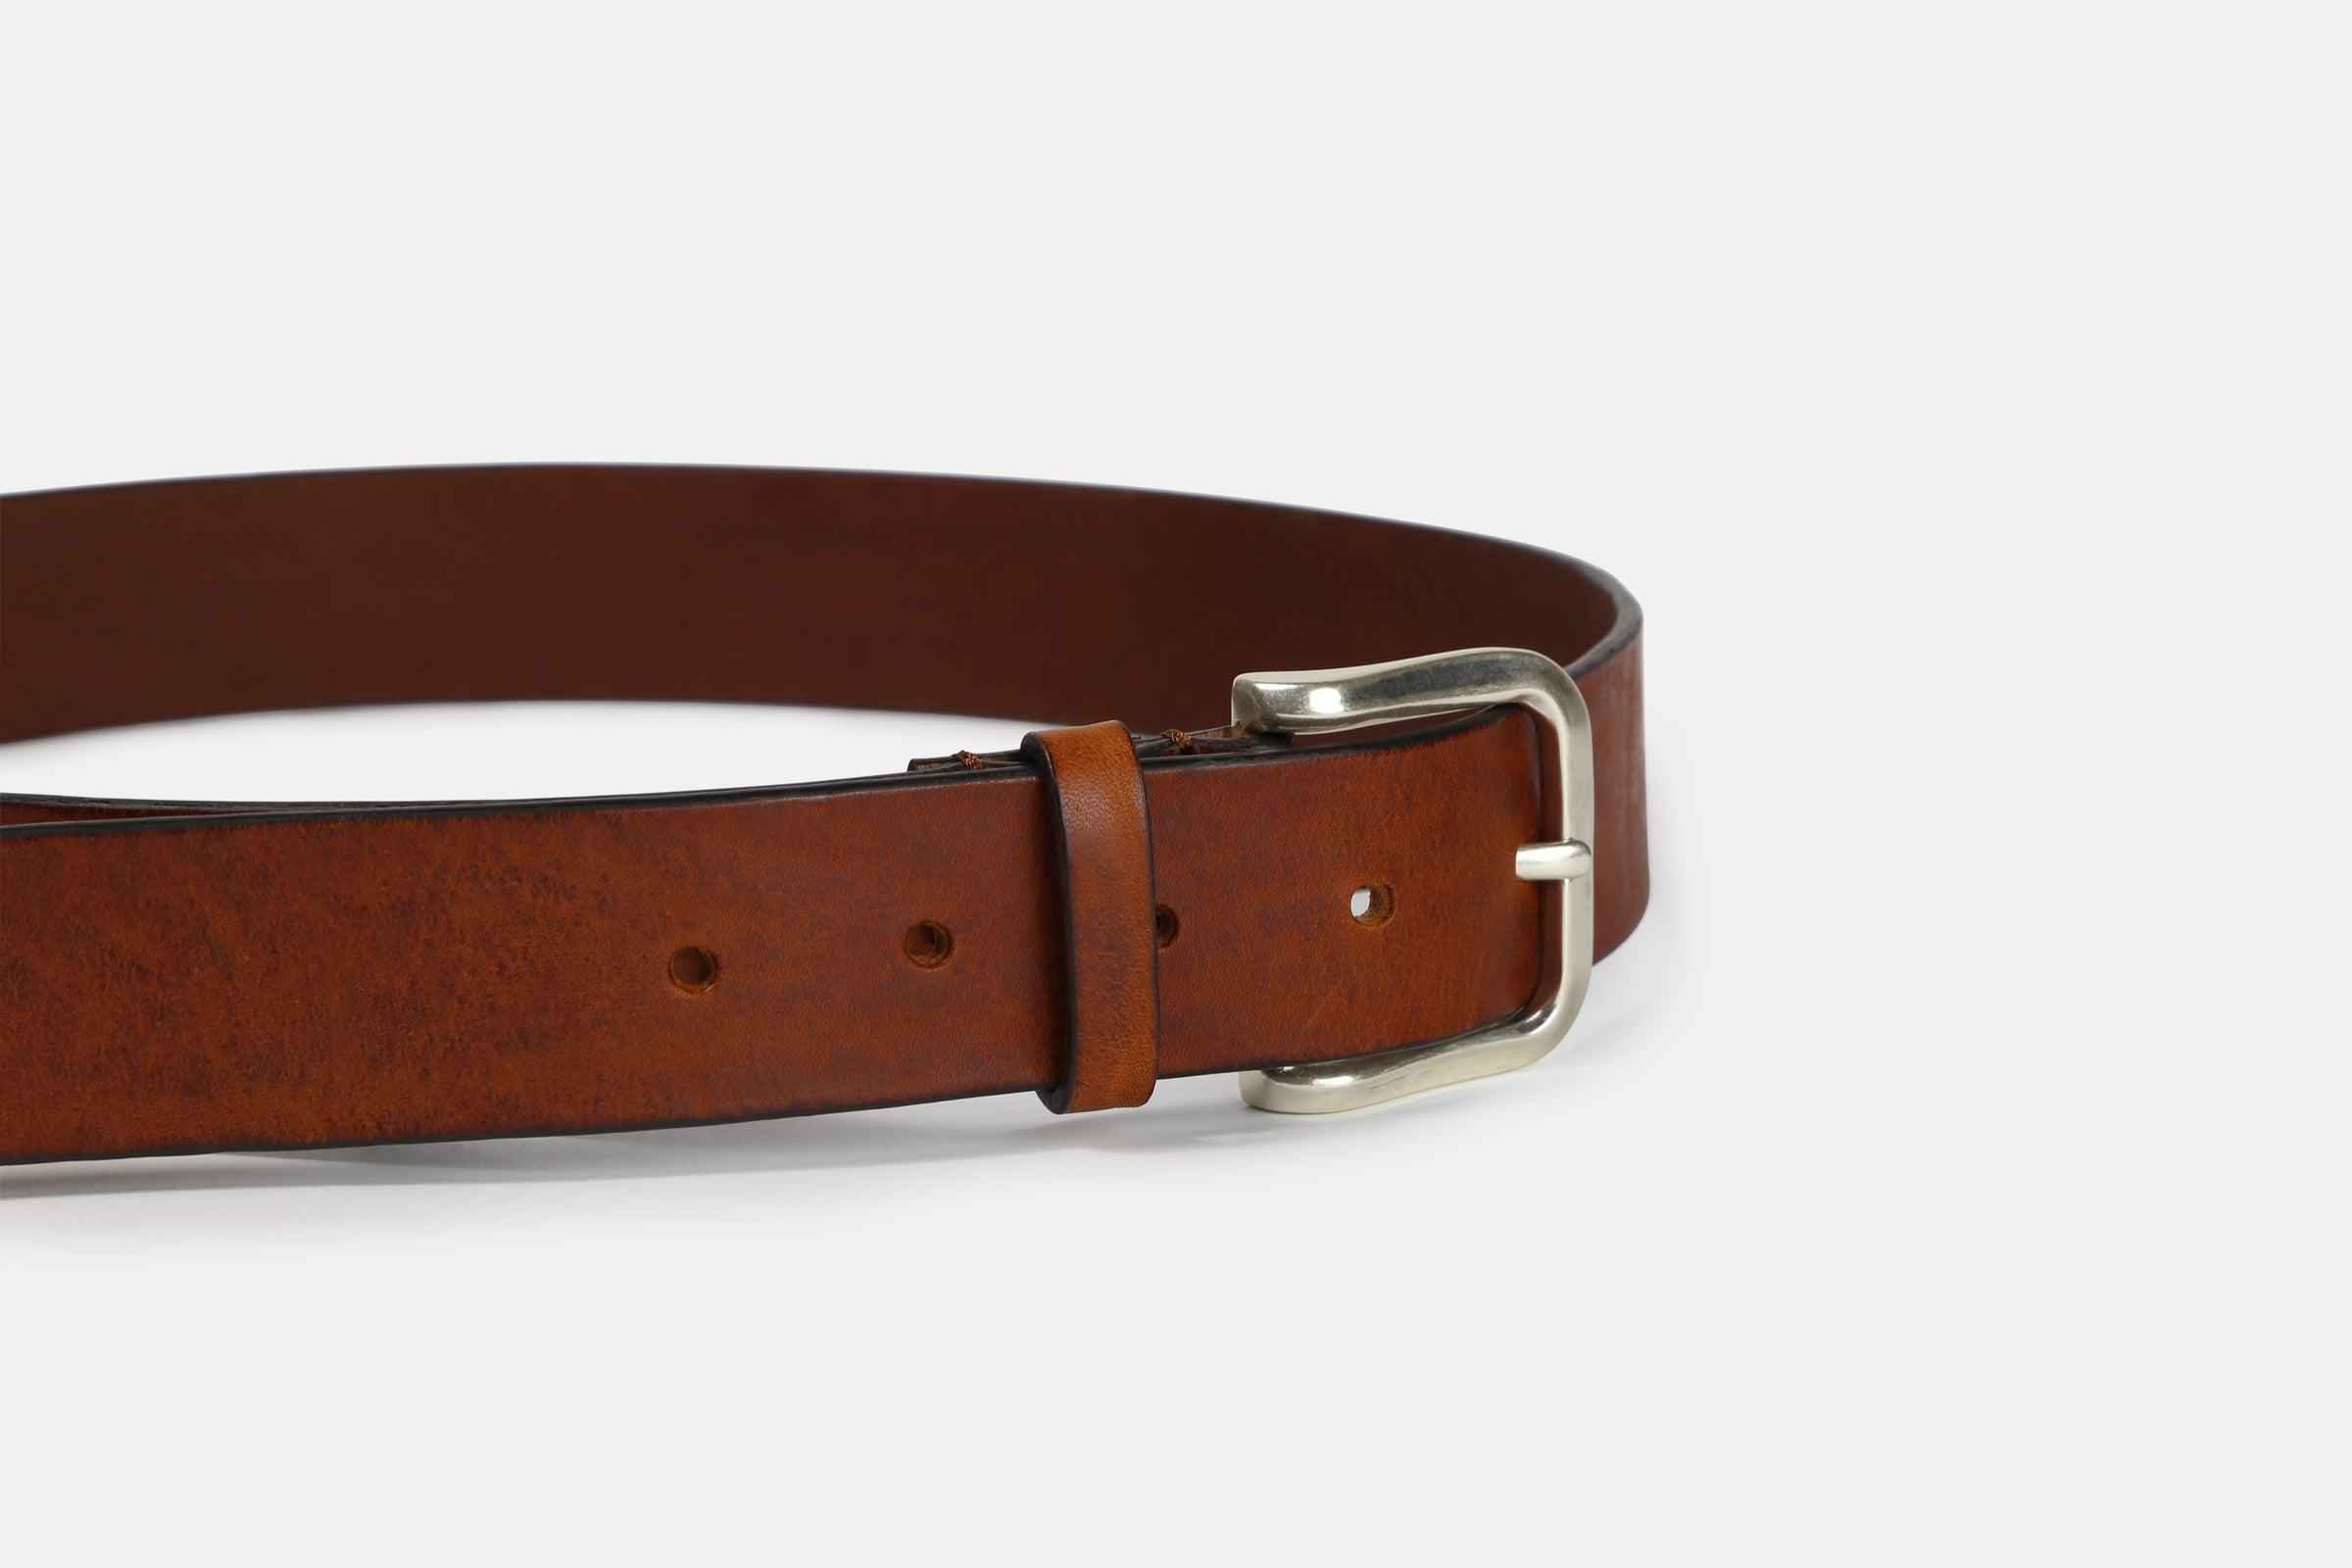 Bond Hammered Belt